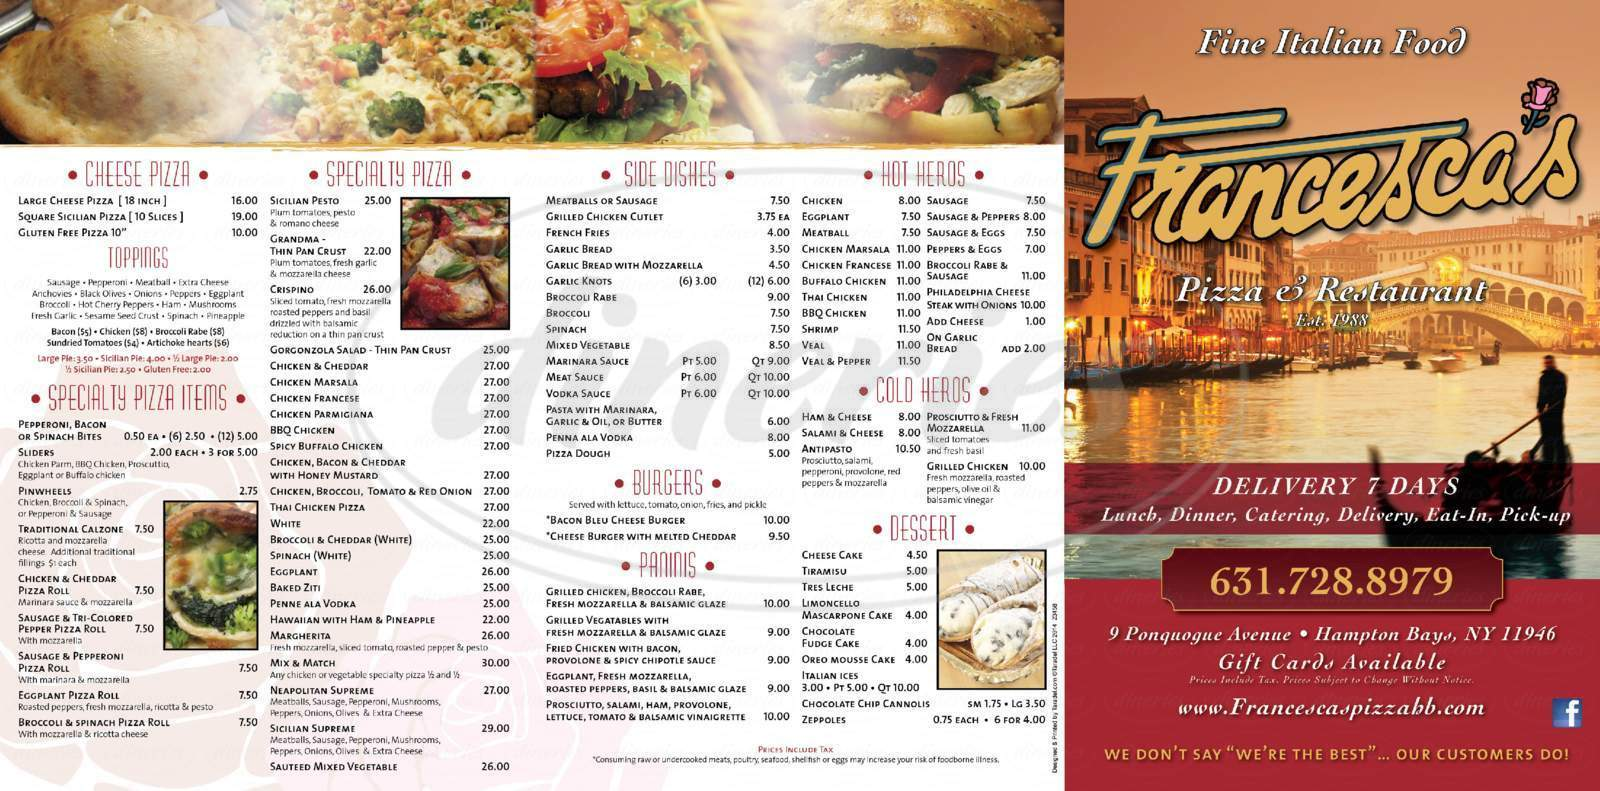 menu for Francesca's Restaurant & Pizzeria